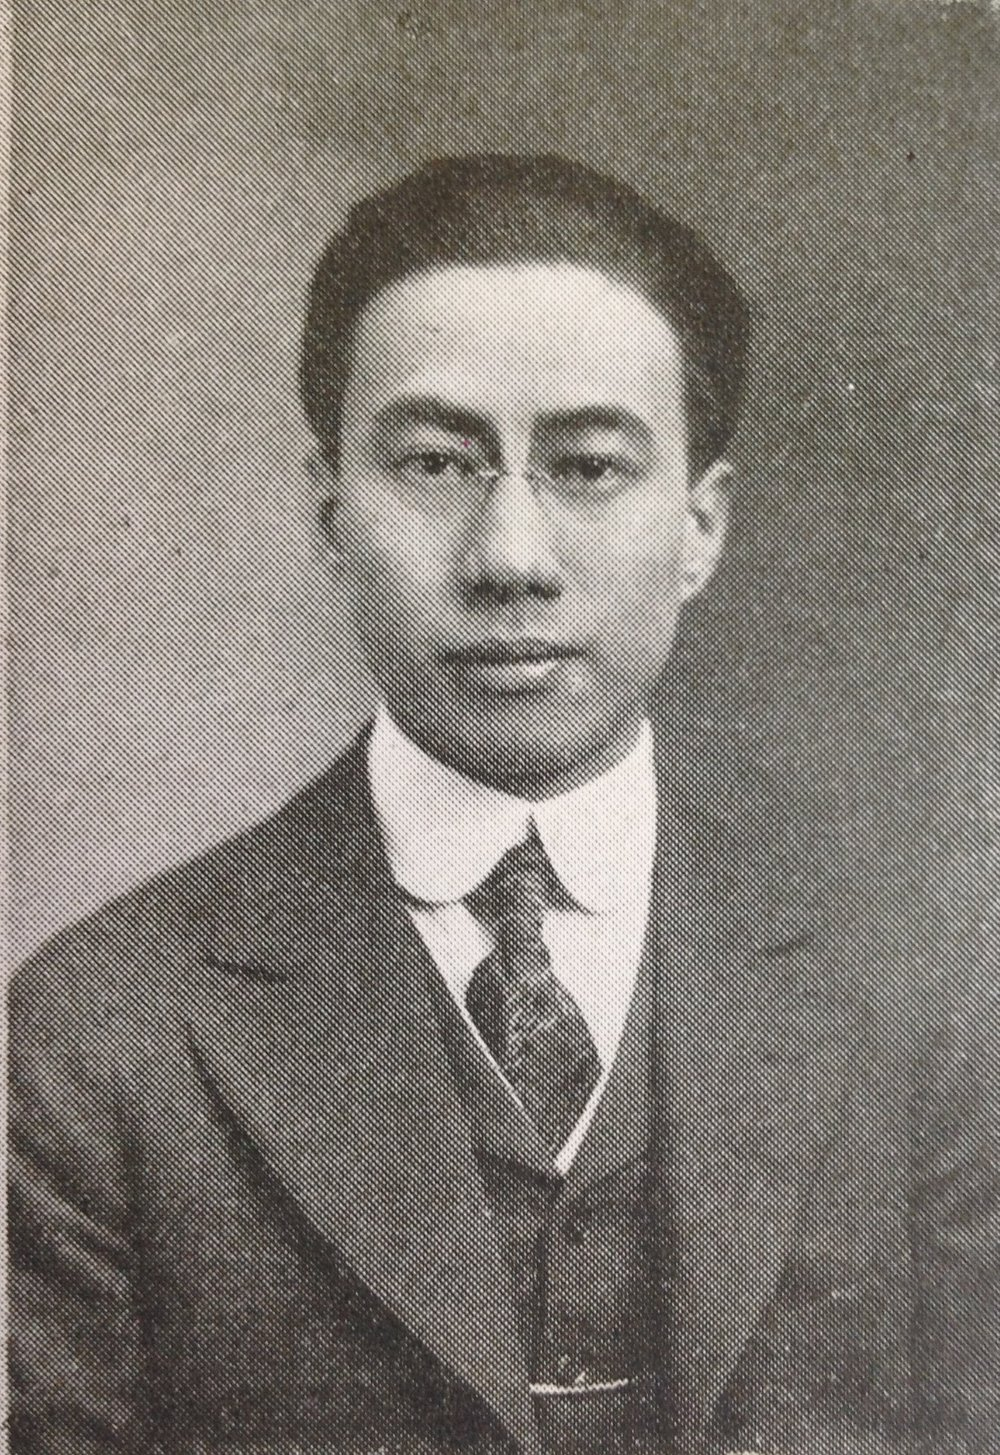 V. Fong Lam, The Technique, 1916. Courtesy MIT Archives and Special Collections.